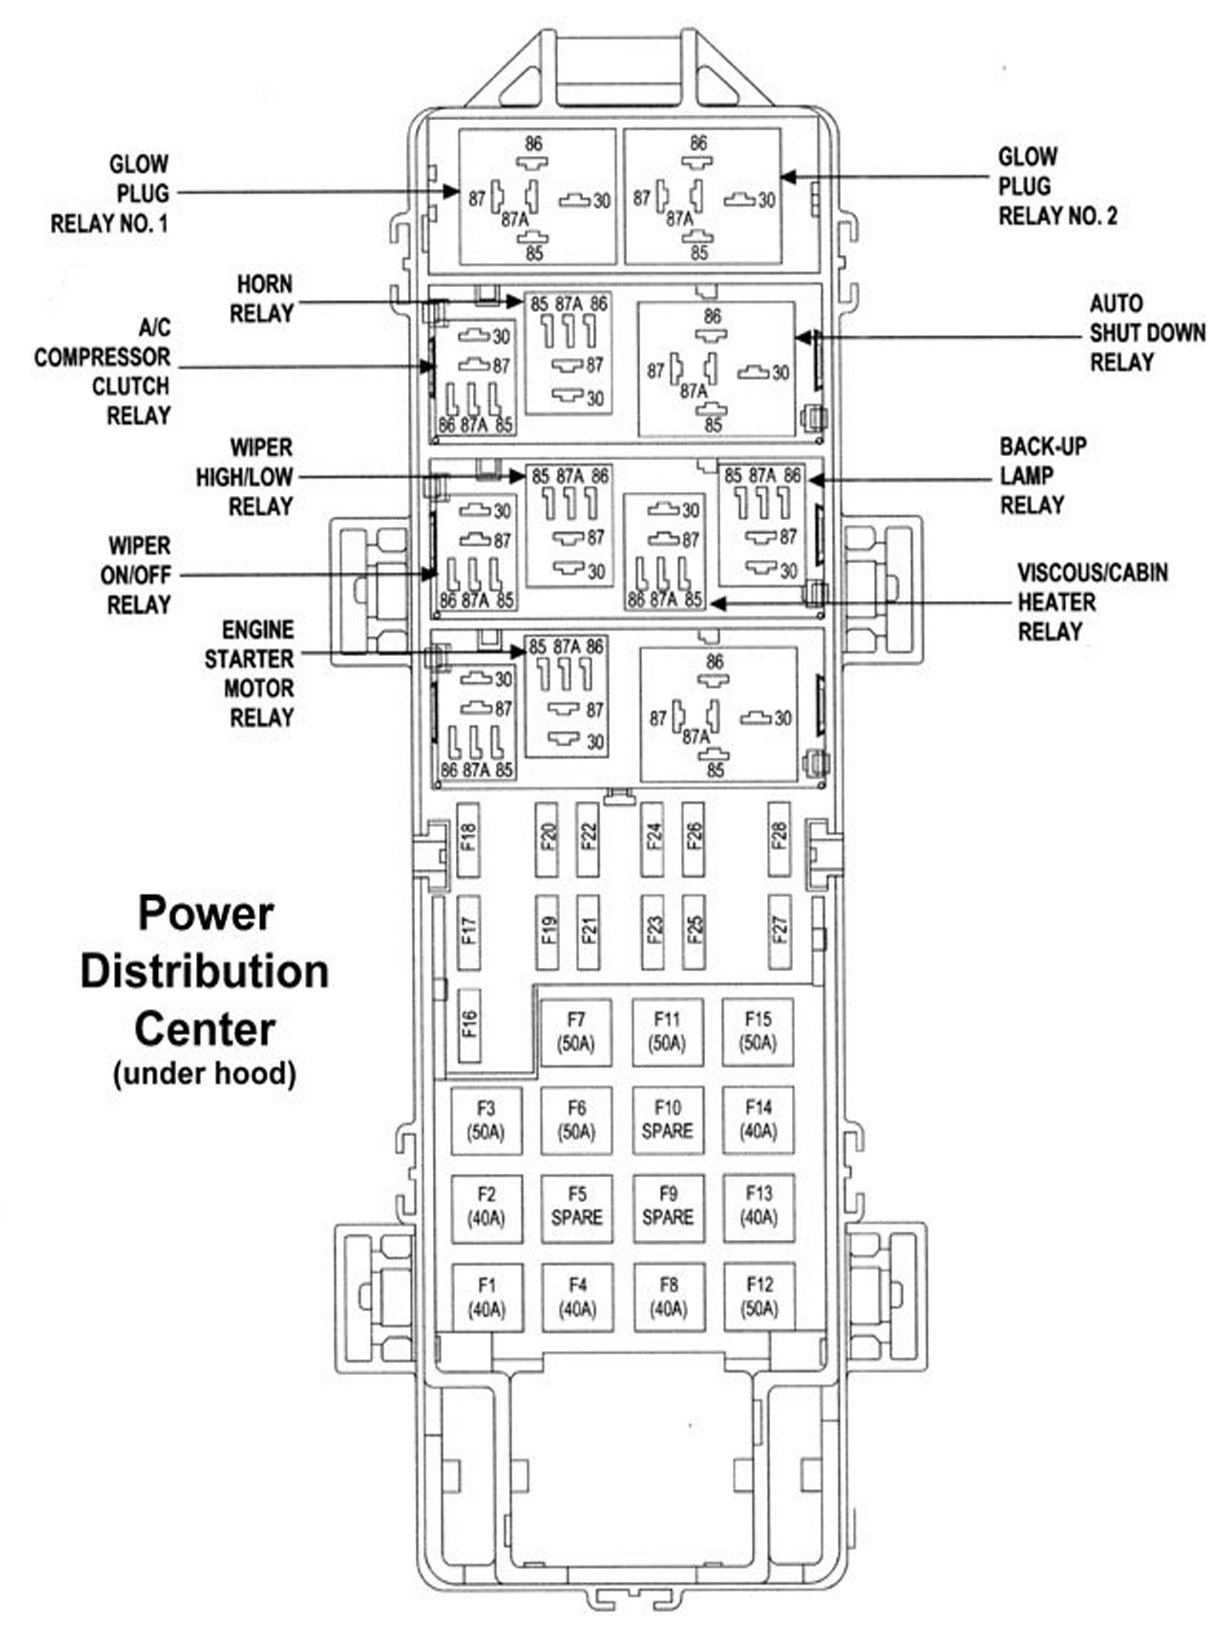 1999 cherokee fuse box diagram